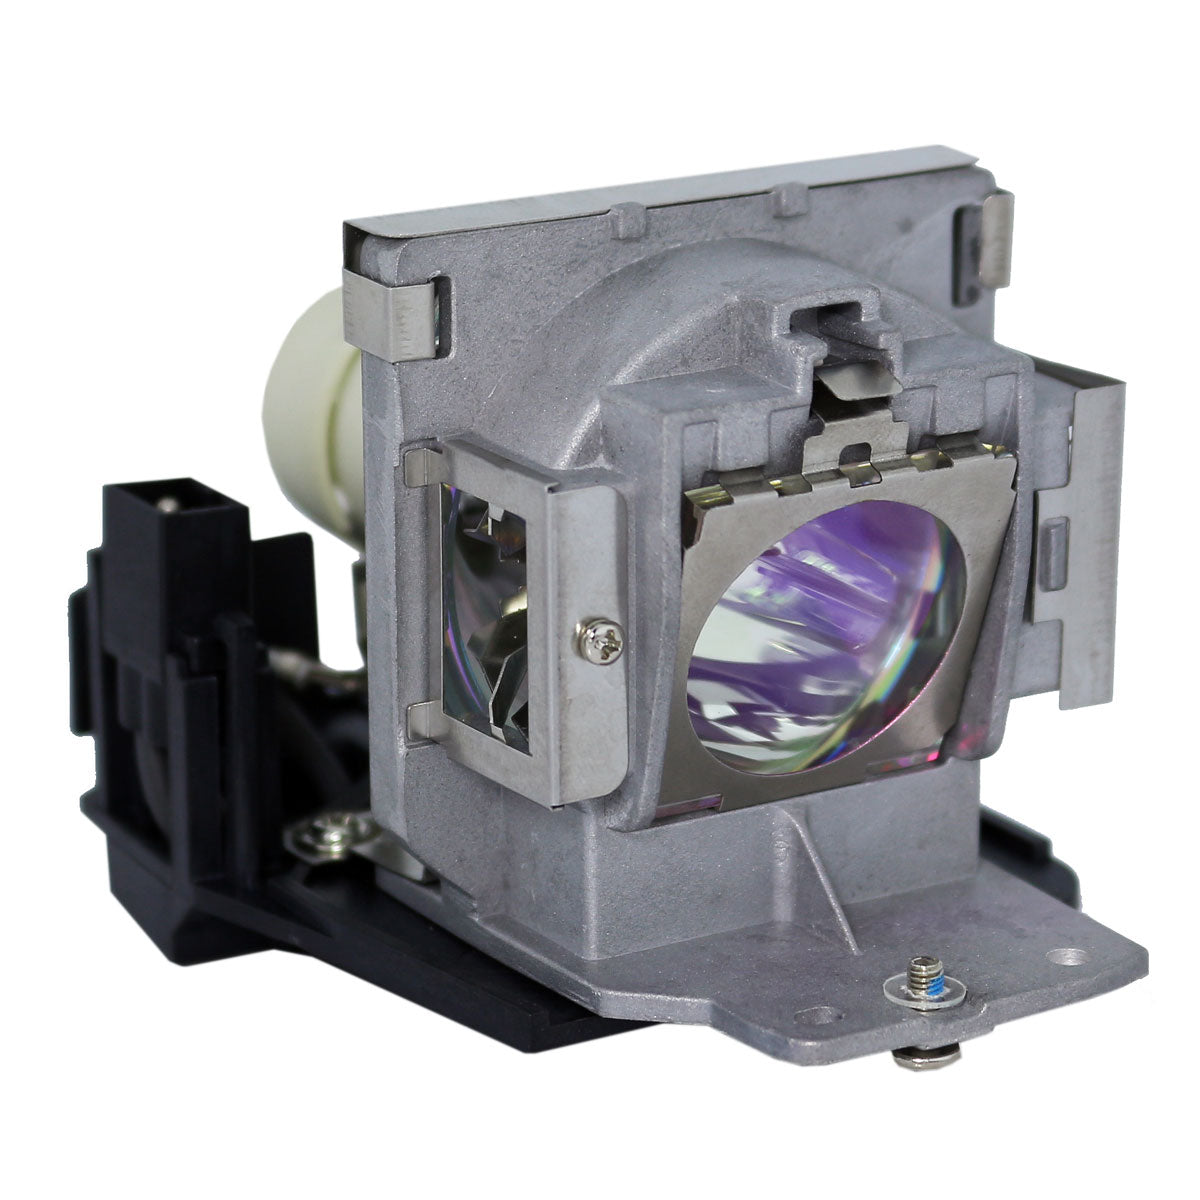 BenQ 5J.07E01.001 Philips Projector Lamp Module